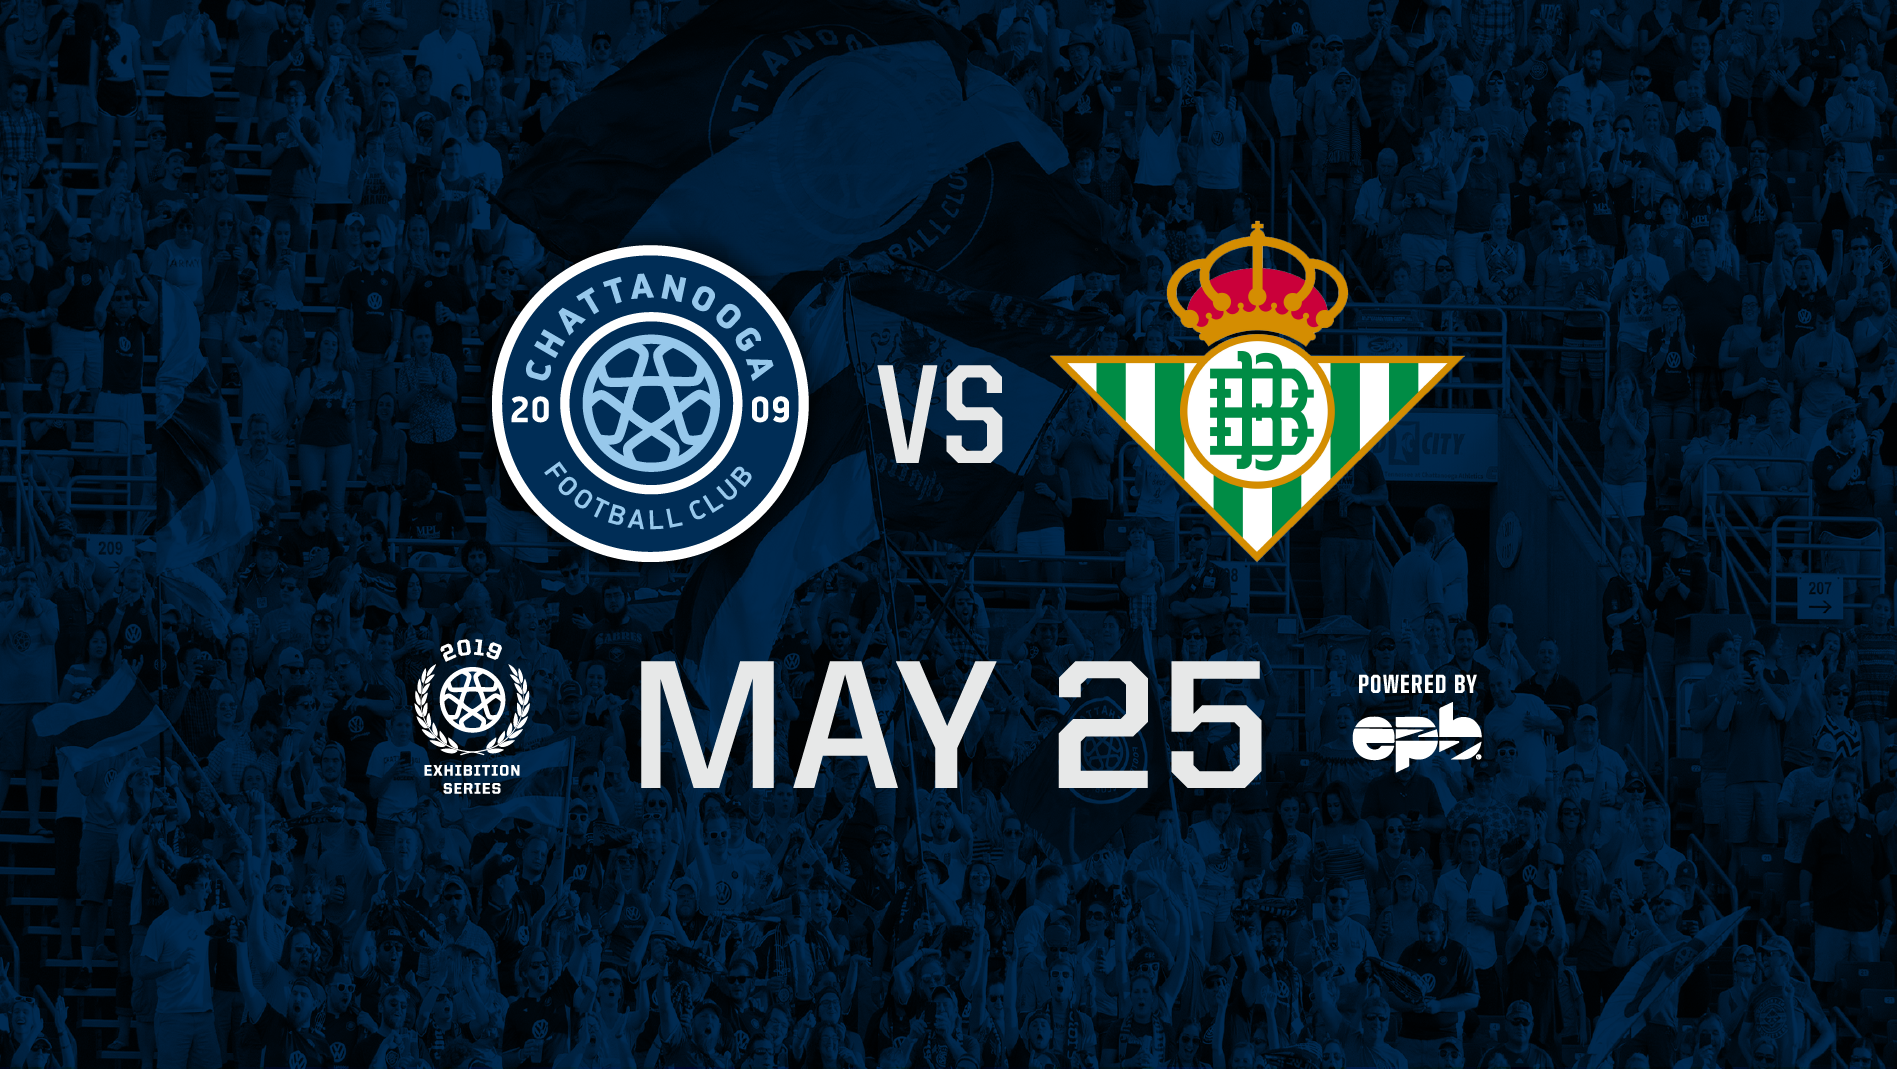 Cfc V Betis Gameday Faqs News Chattanooga Fc